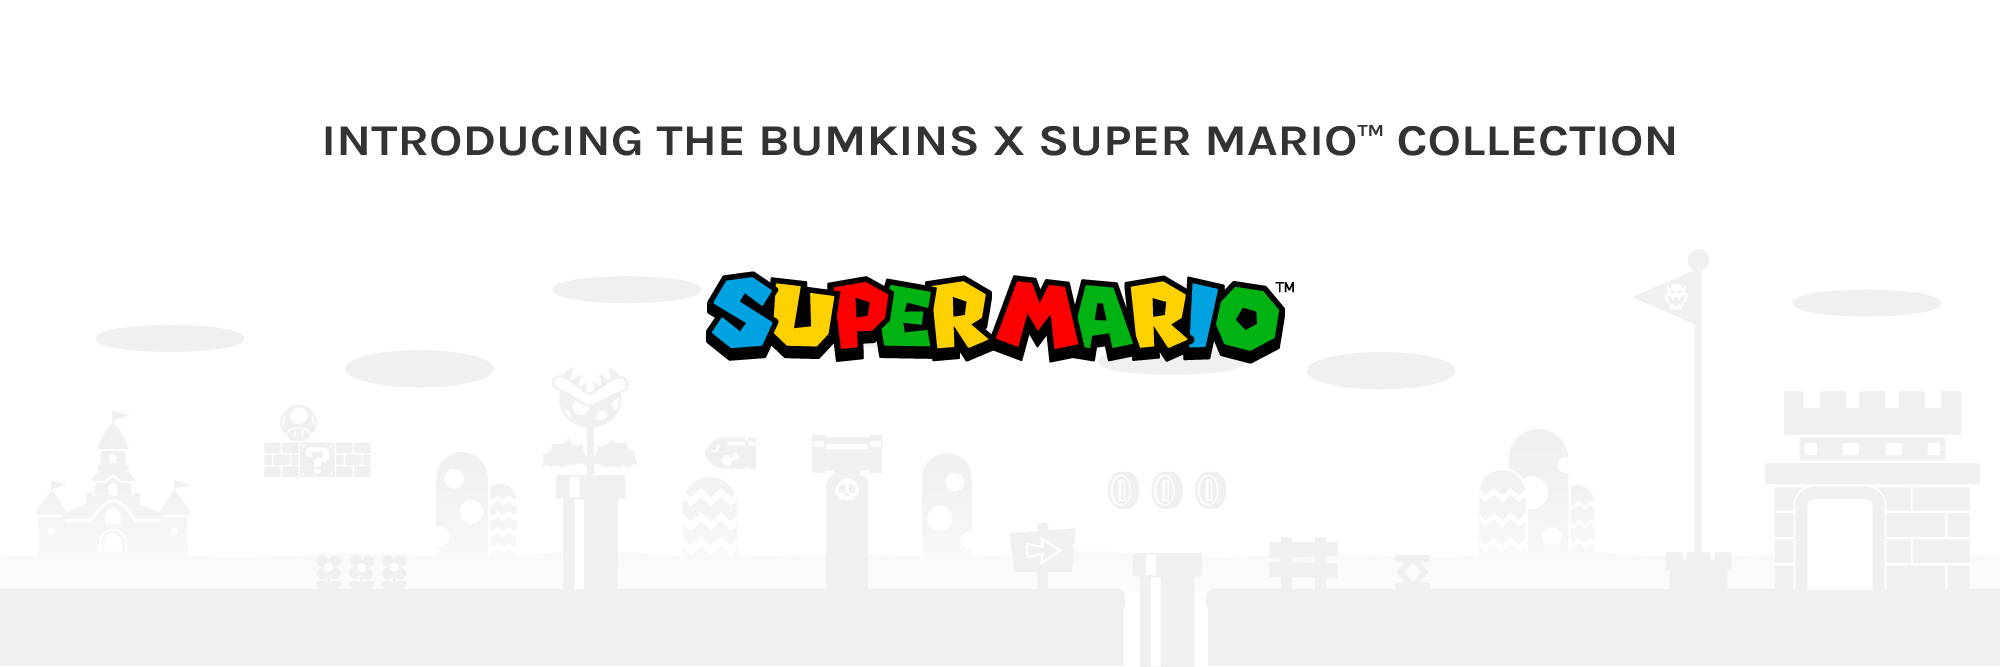 introducing the bumkins and super mario collection